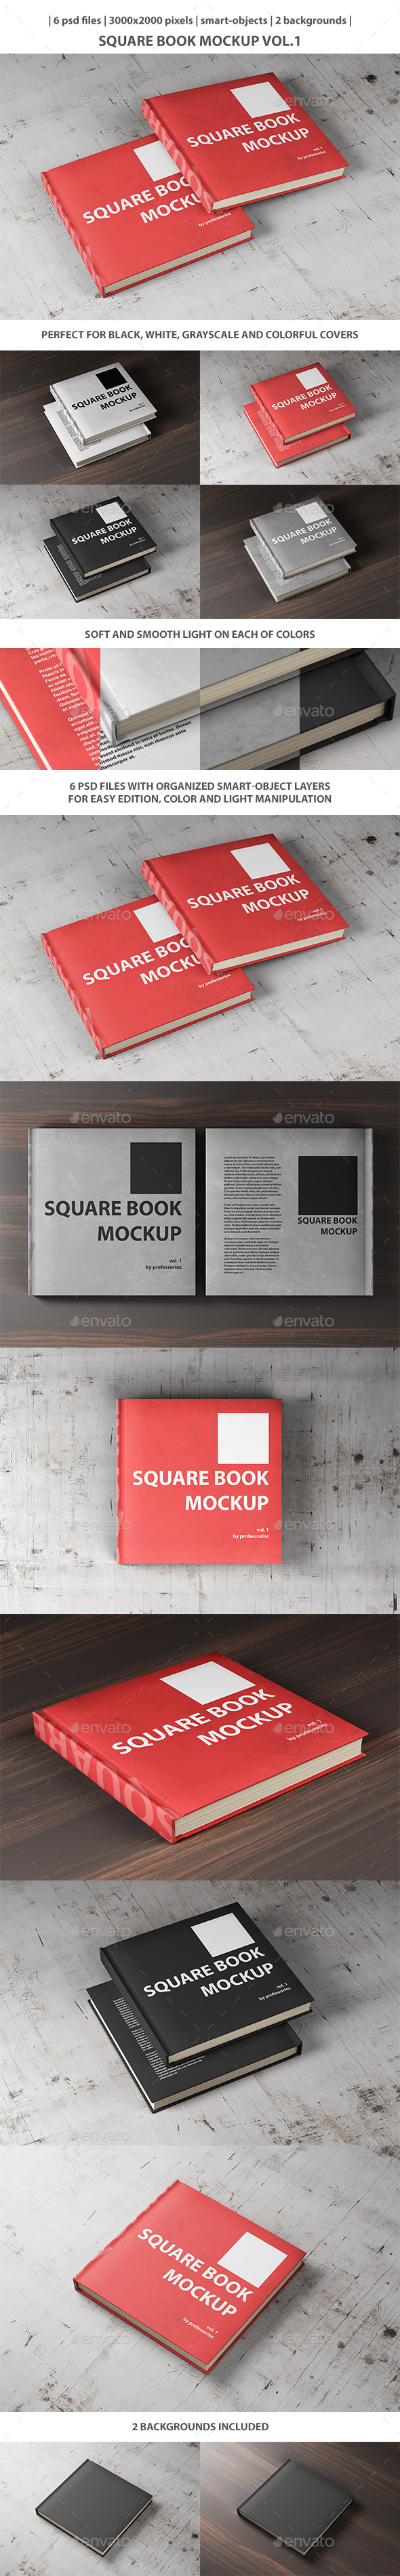 Square book mockup vol 1 by professorinc graphicriver square book mockup vol 1 books print reheart Gallery